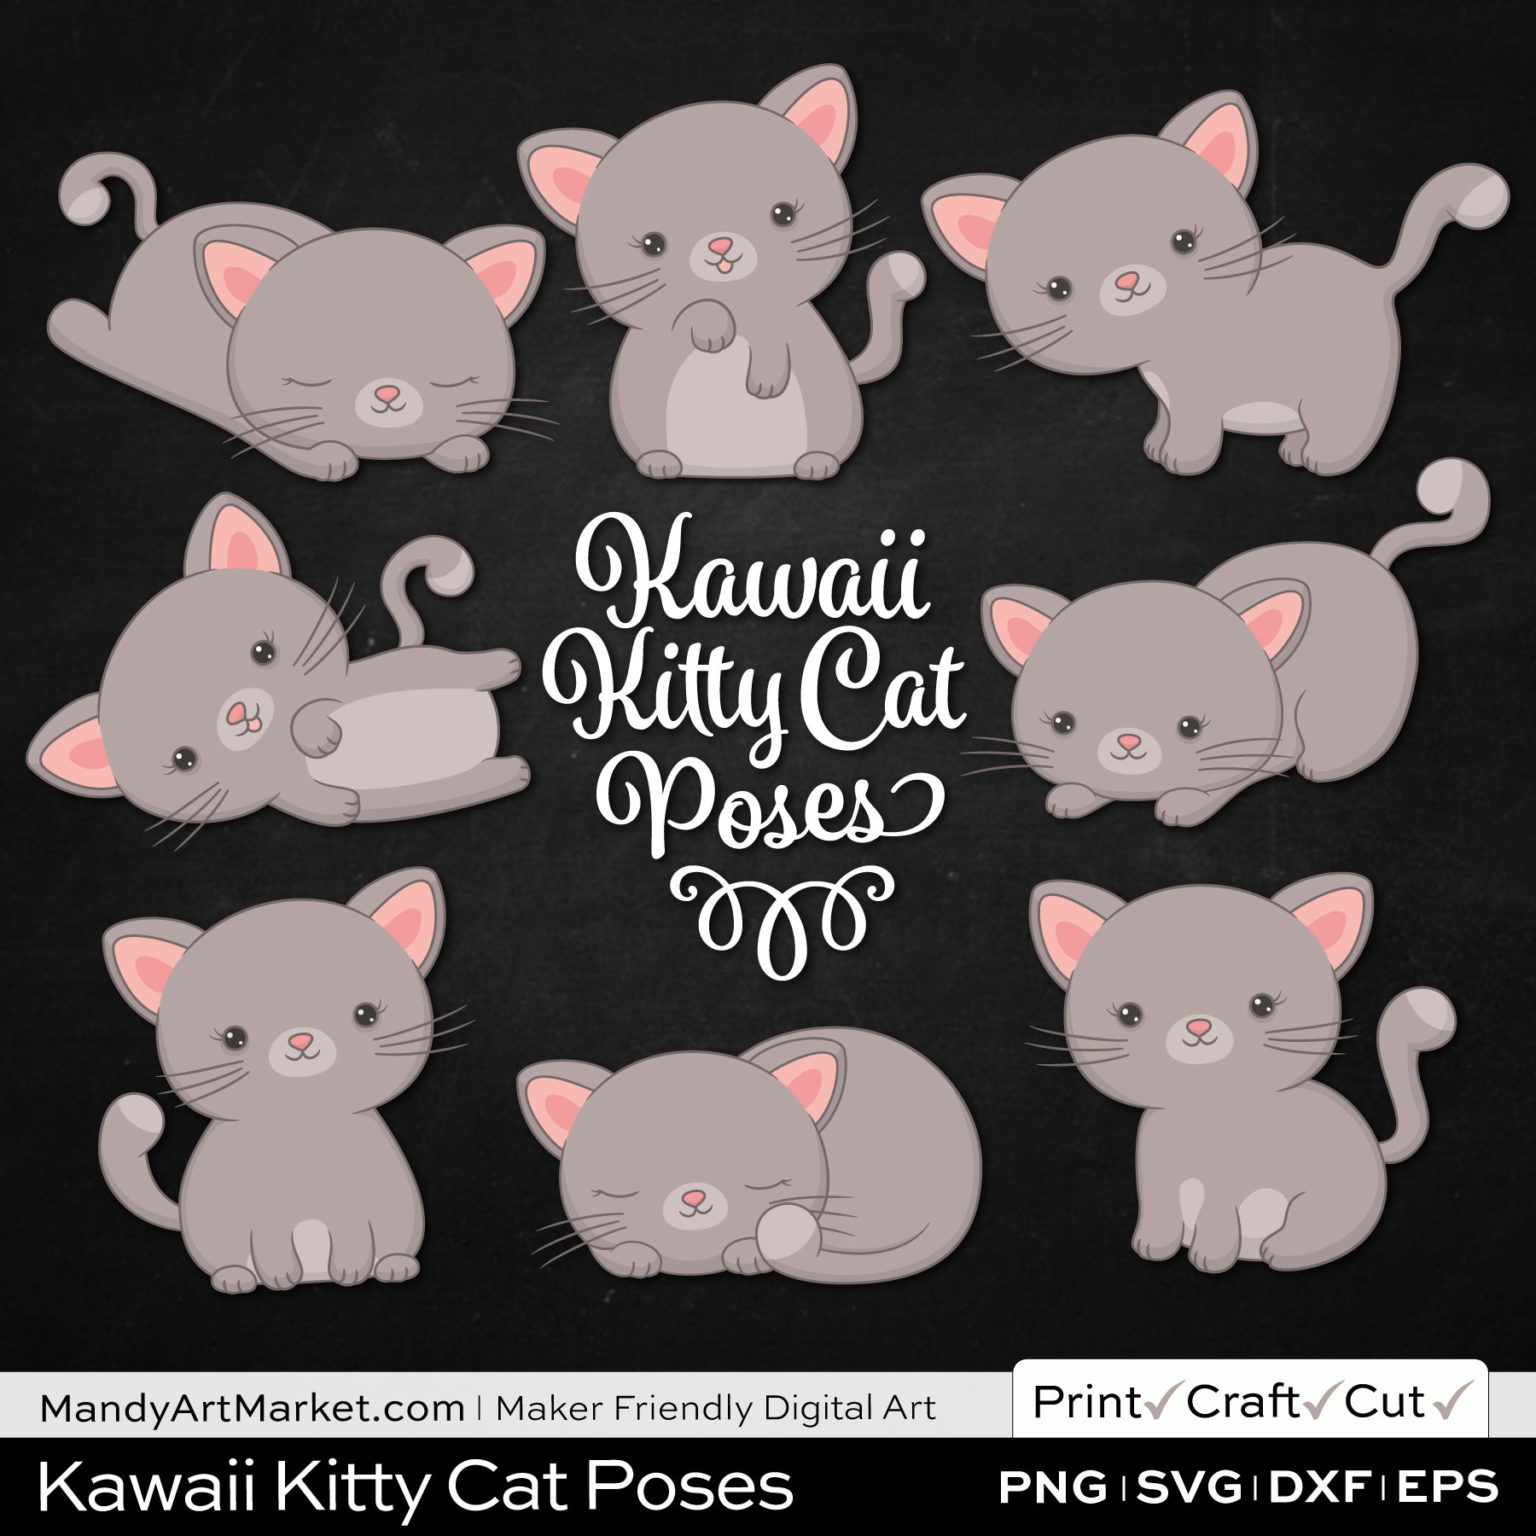 Warm Taupe Kawaii Kitty Cat Poses Clipart on Black Background